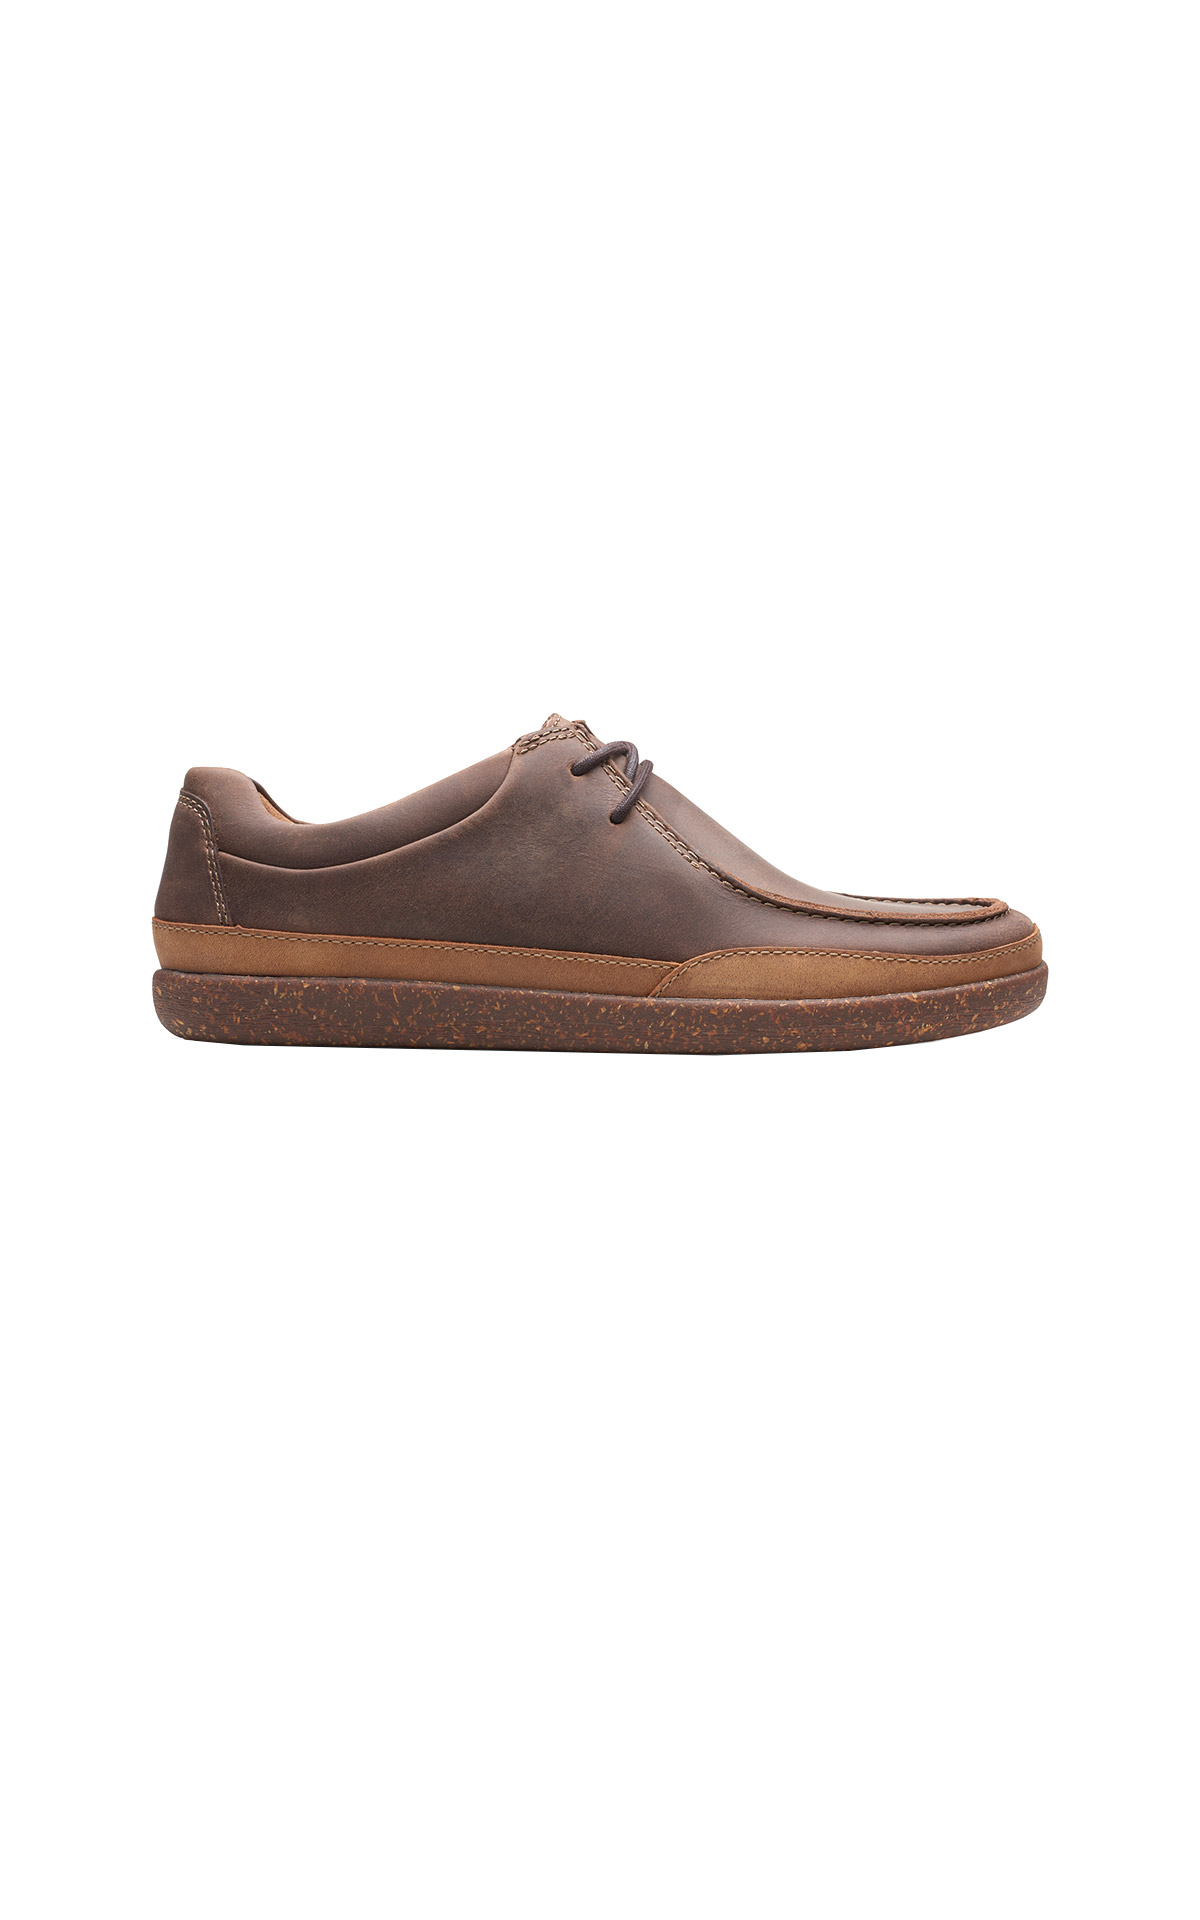 Men's Un Lisbon Walk shoe Clarks